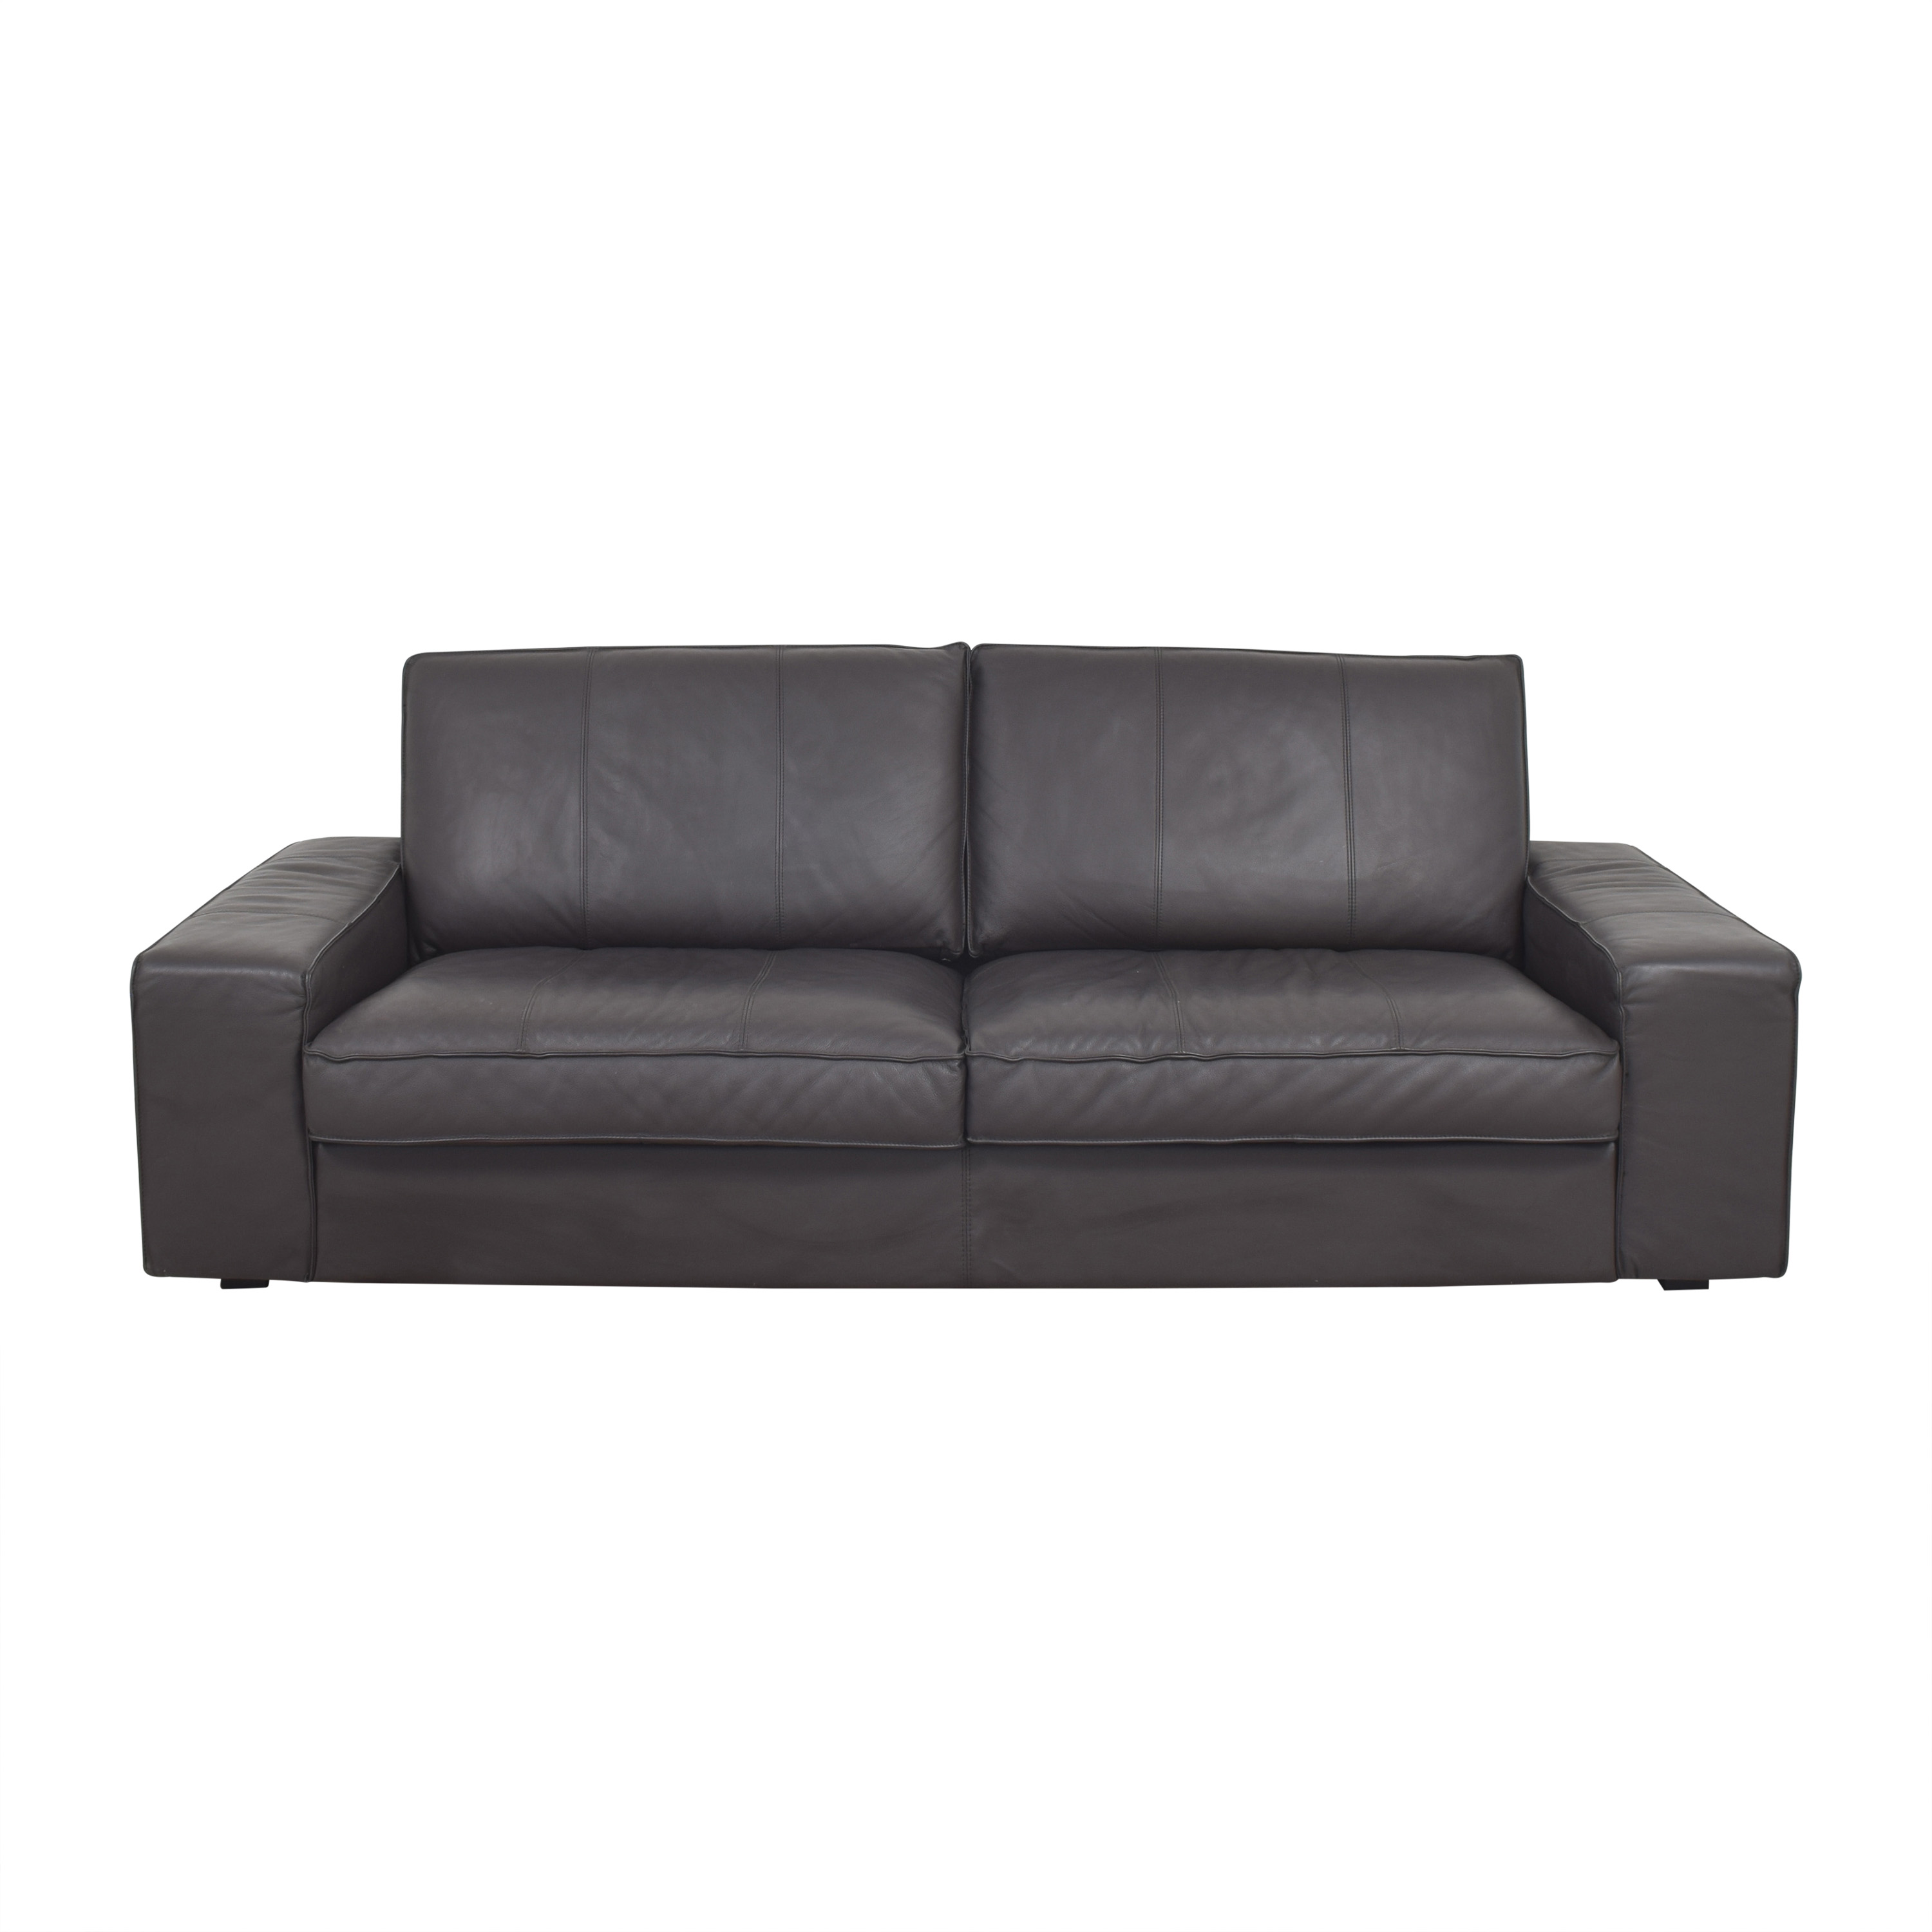 IKEA IKEA KIVIK Two Cushion Sofa